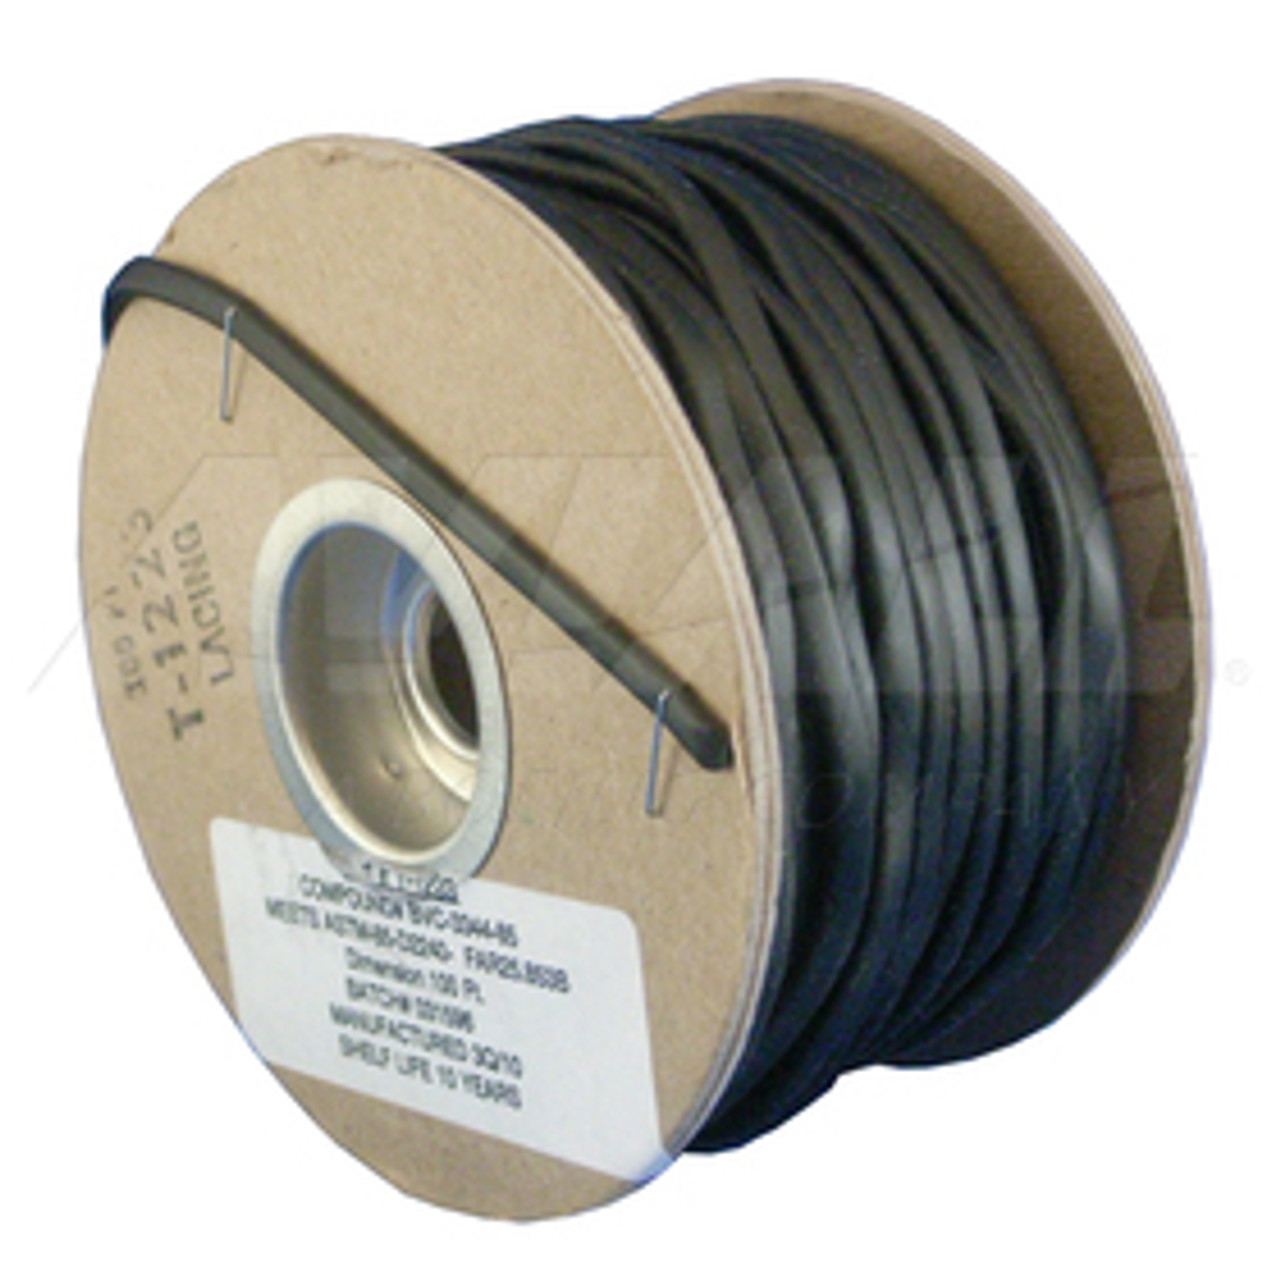 """The T-1223 is a 5/32"""" x 3/32"""" oval vinyl cord that is used in tying and bundling of electrical wires and cables throughout the aircraft."""